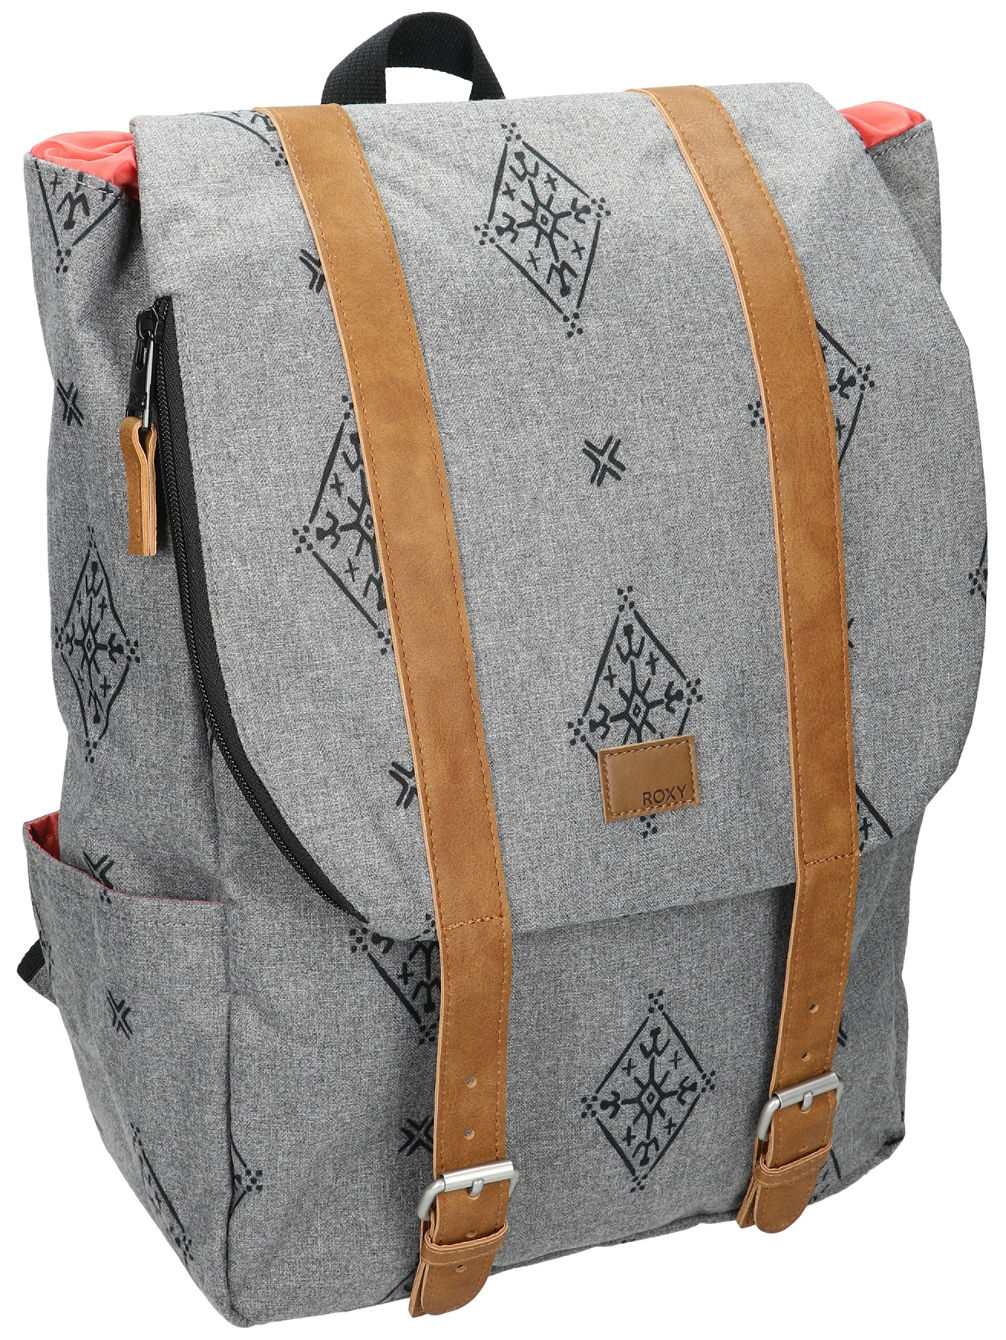 Another Dream Backpack